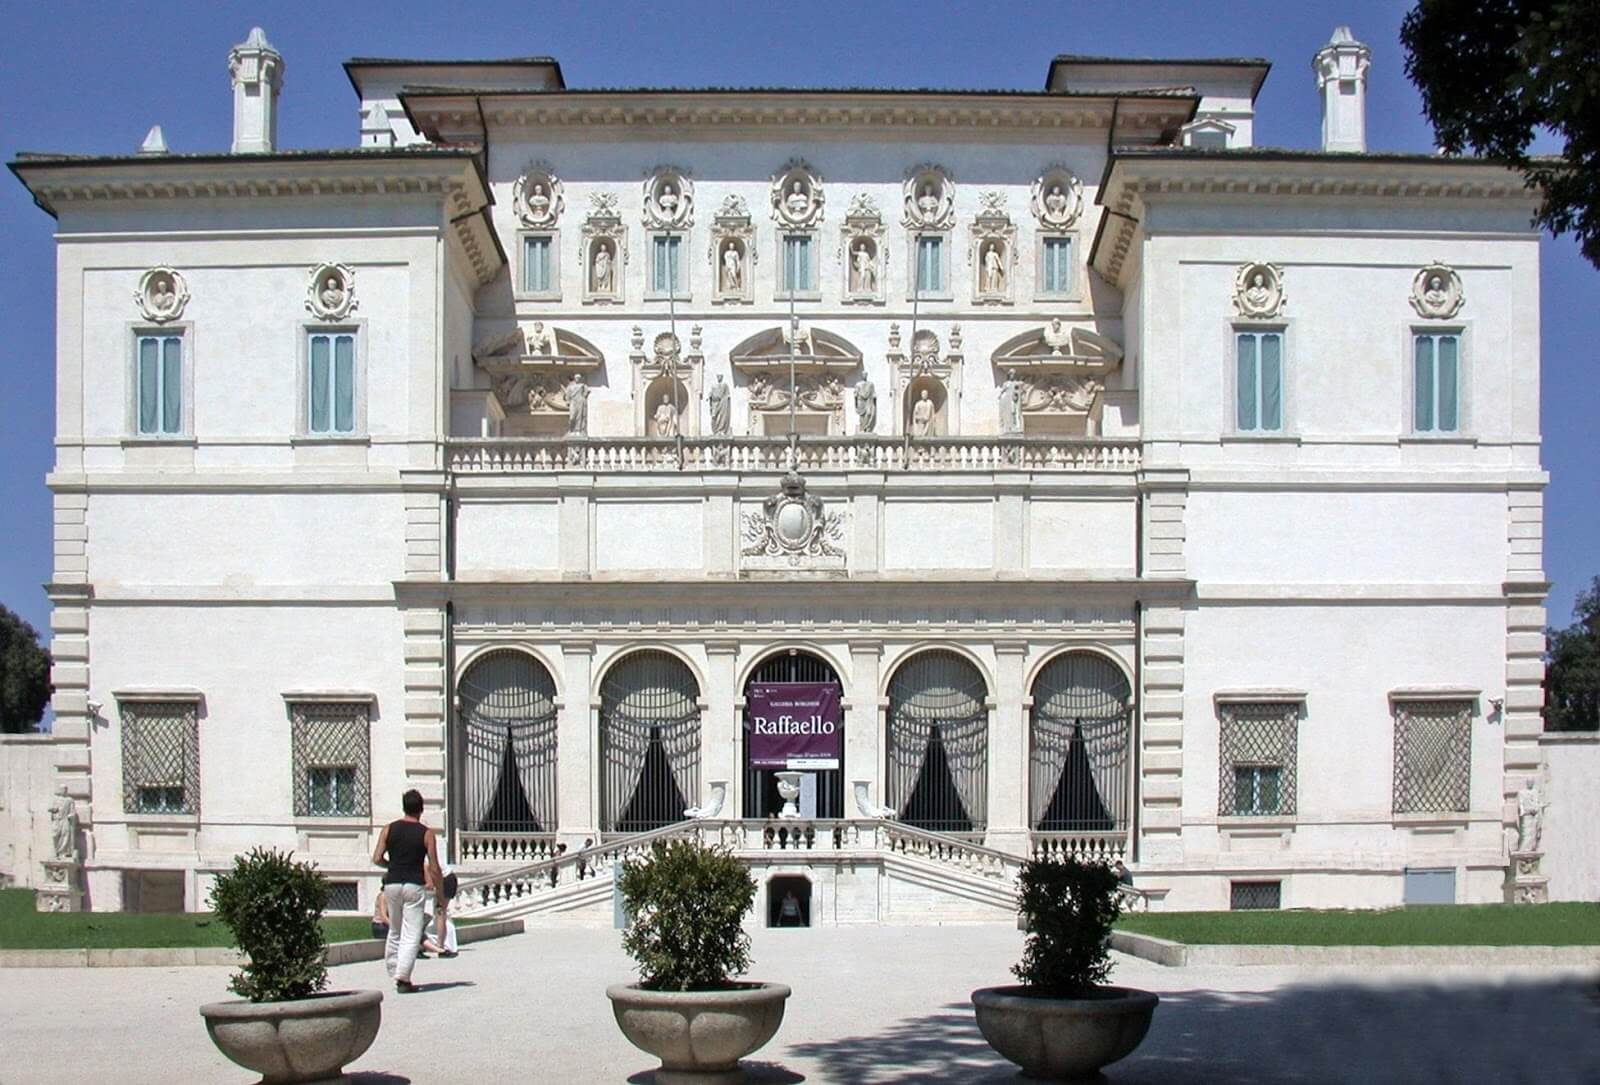 Borghese-gallery-rome-italy.jpg